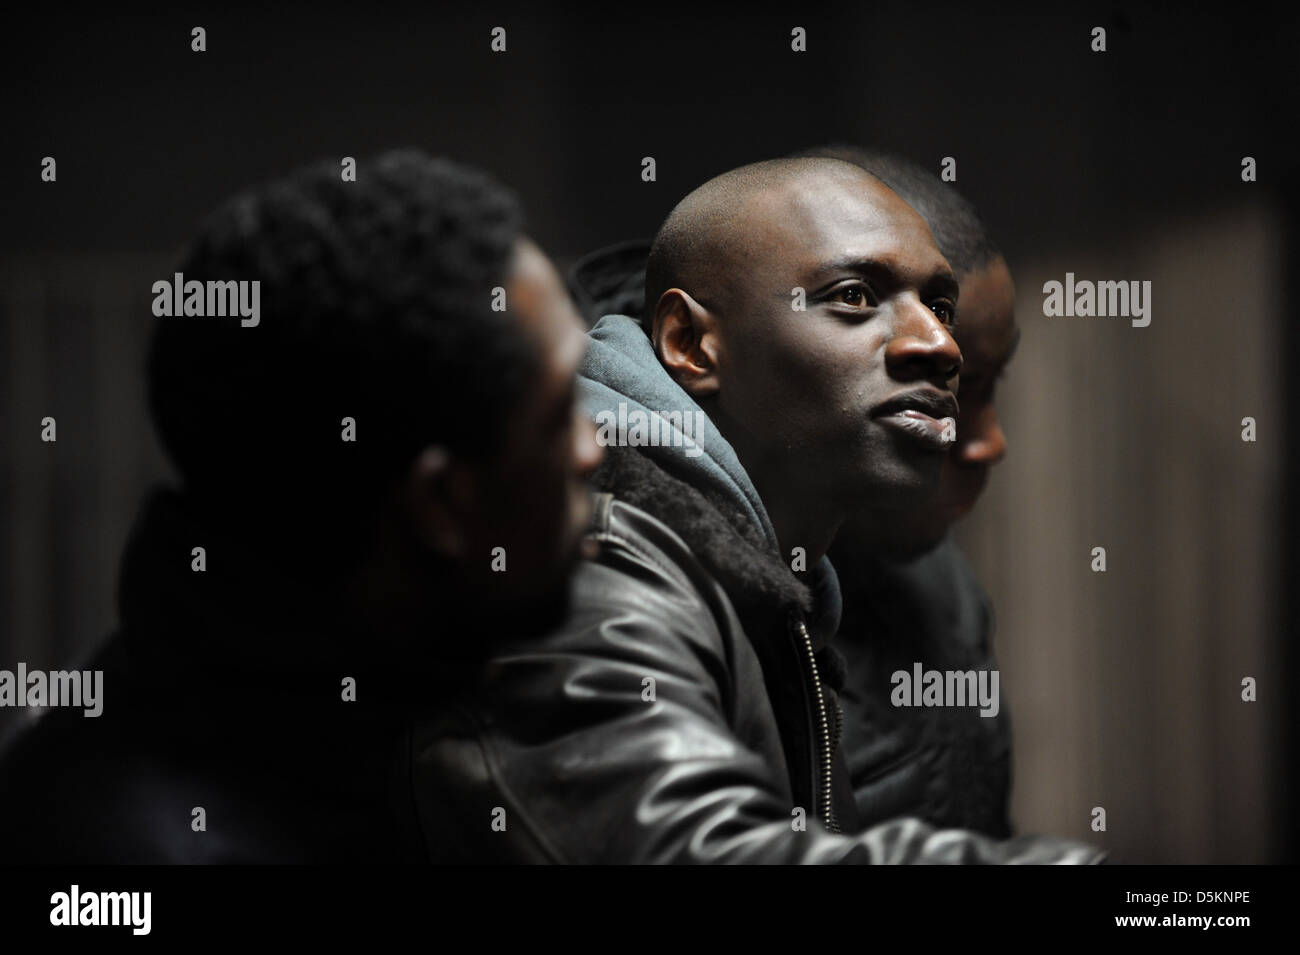 OMAR SY INTOUCHABLES ; UNTOUCHABLE (2011) Stock Photo